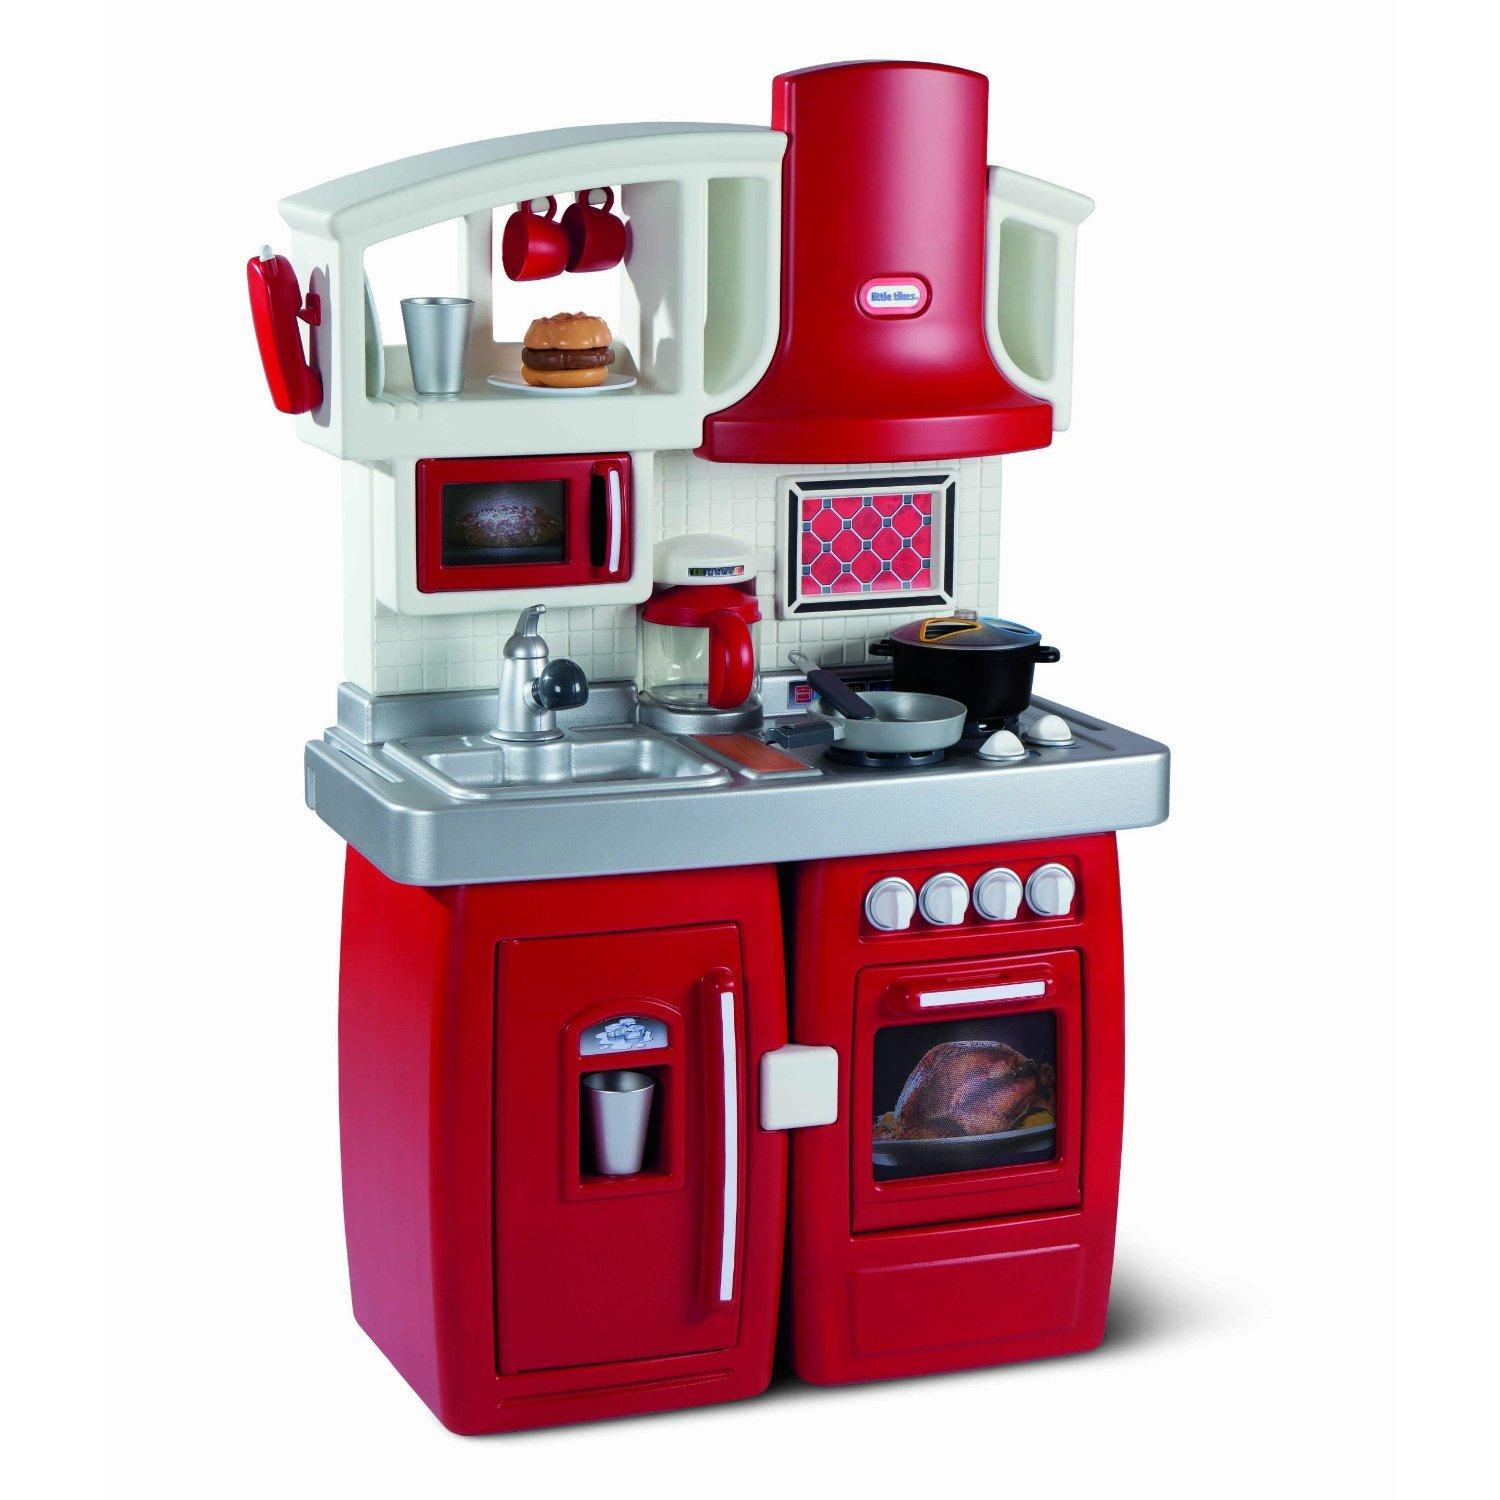 Cook 'n Grow Kitchen - $112.61